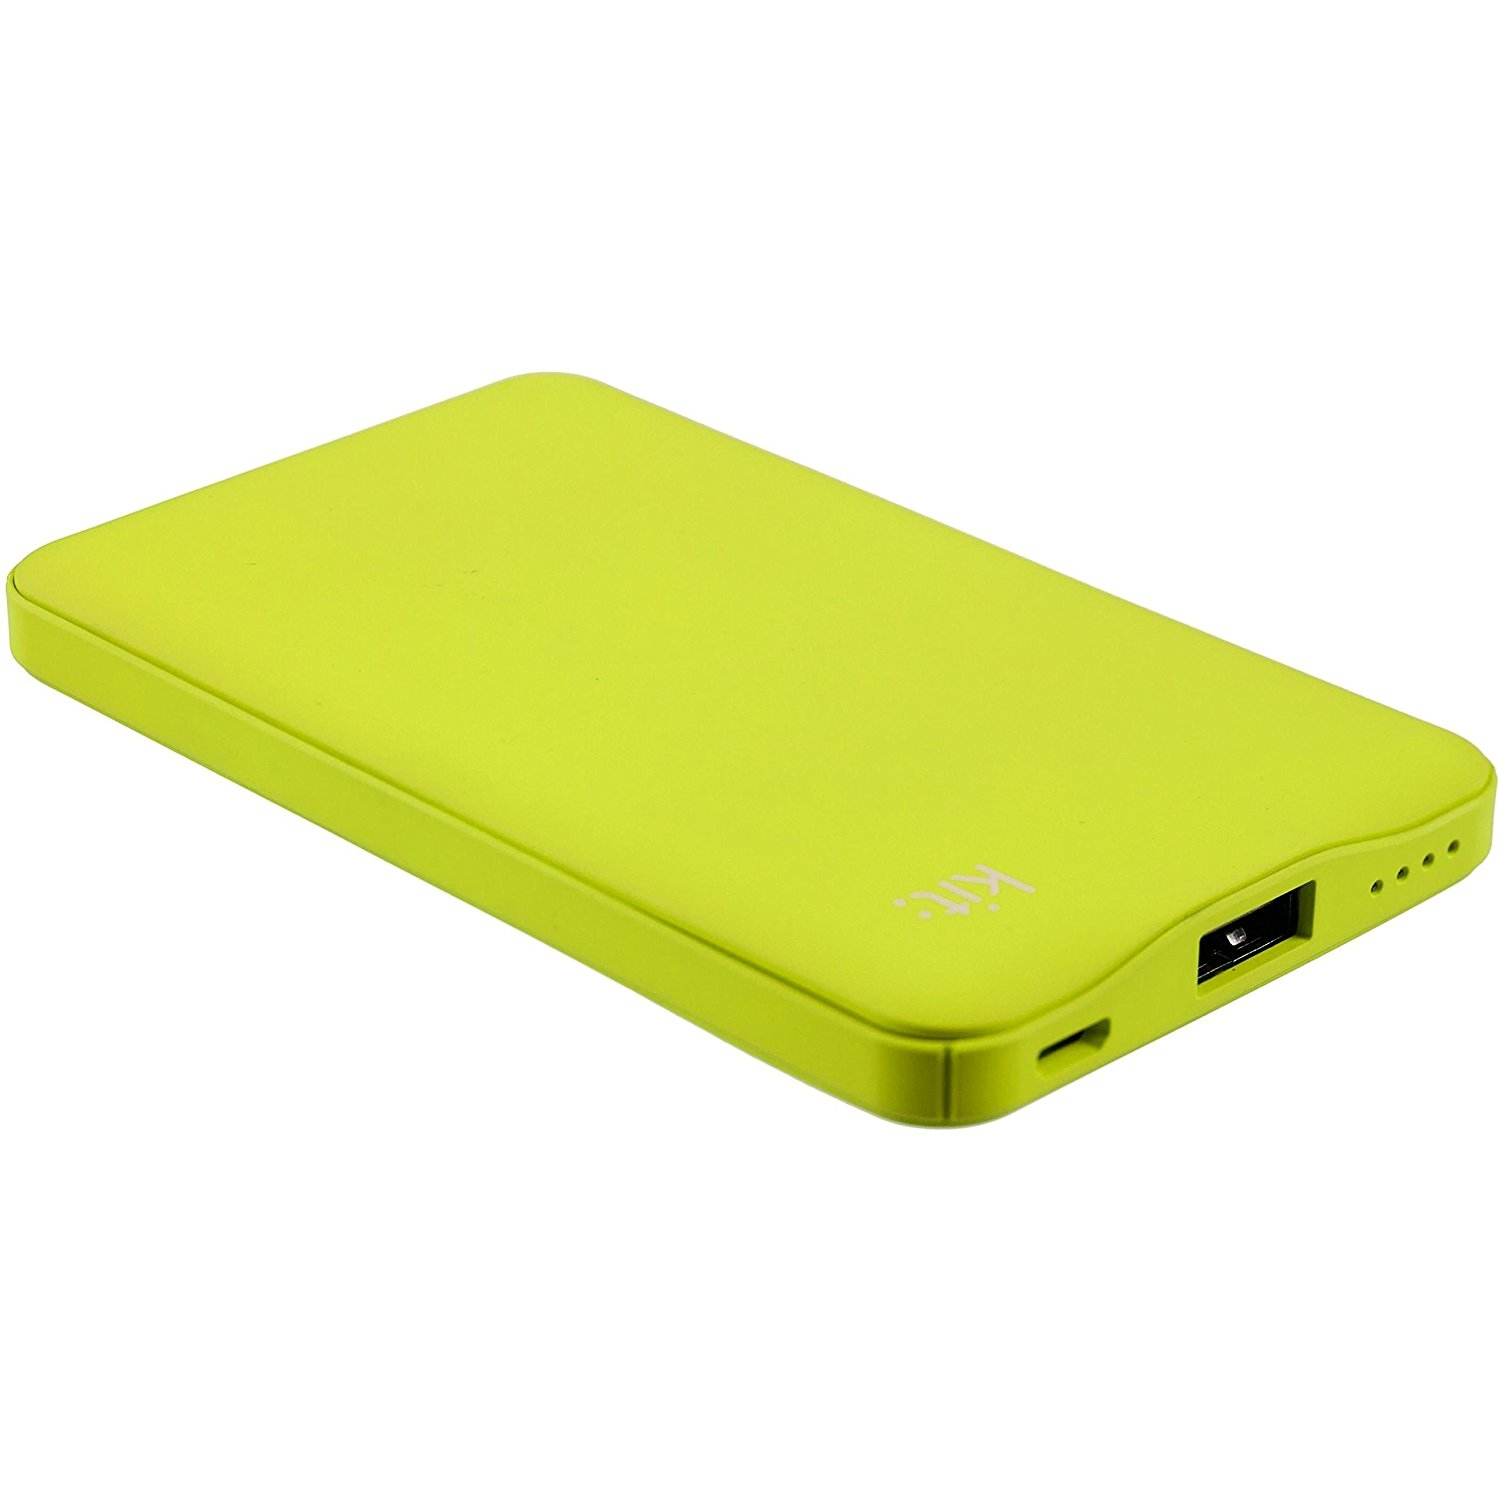 Kit Power Bank Fresh 6000 mAh zöld